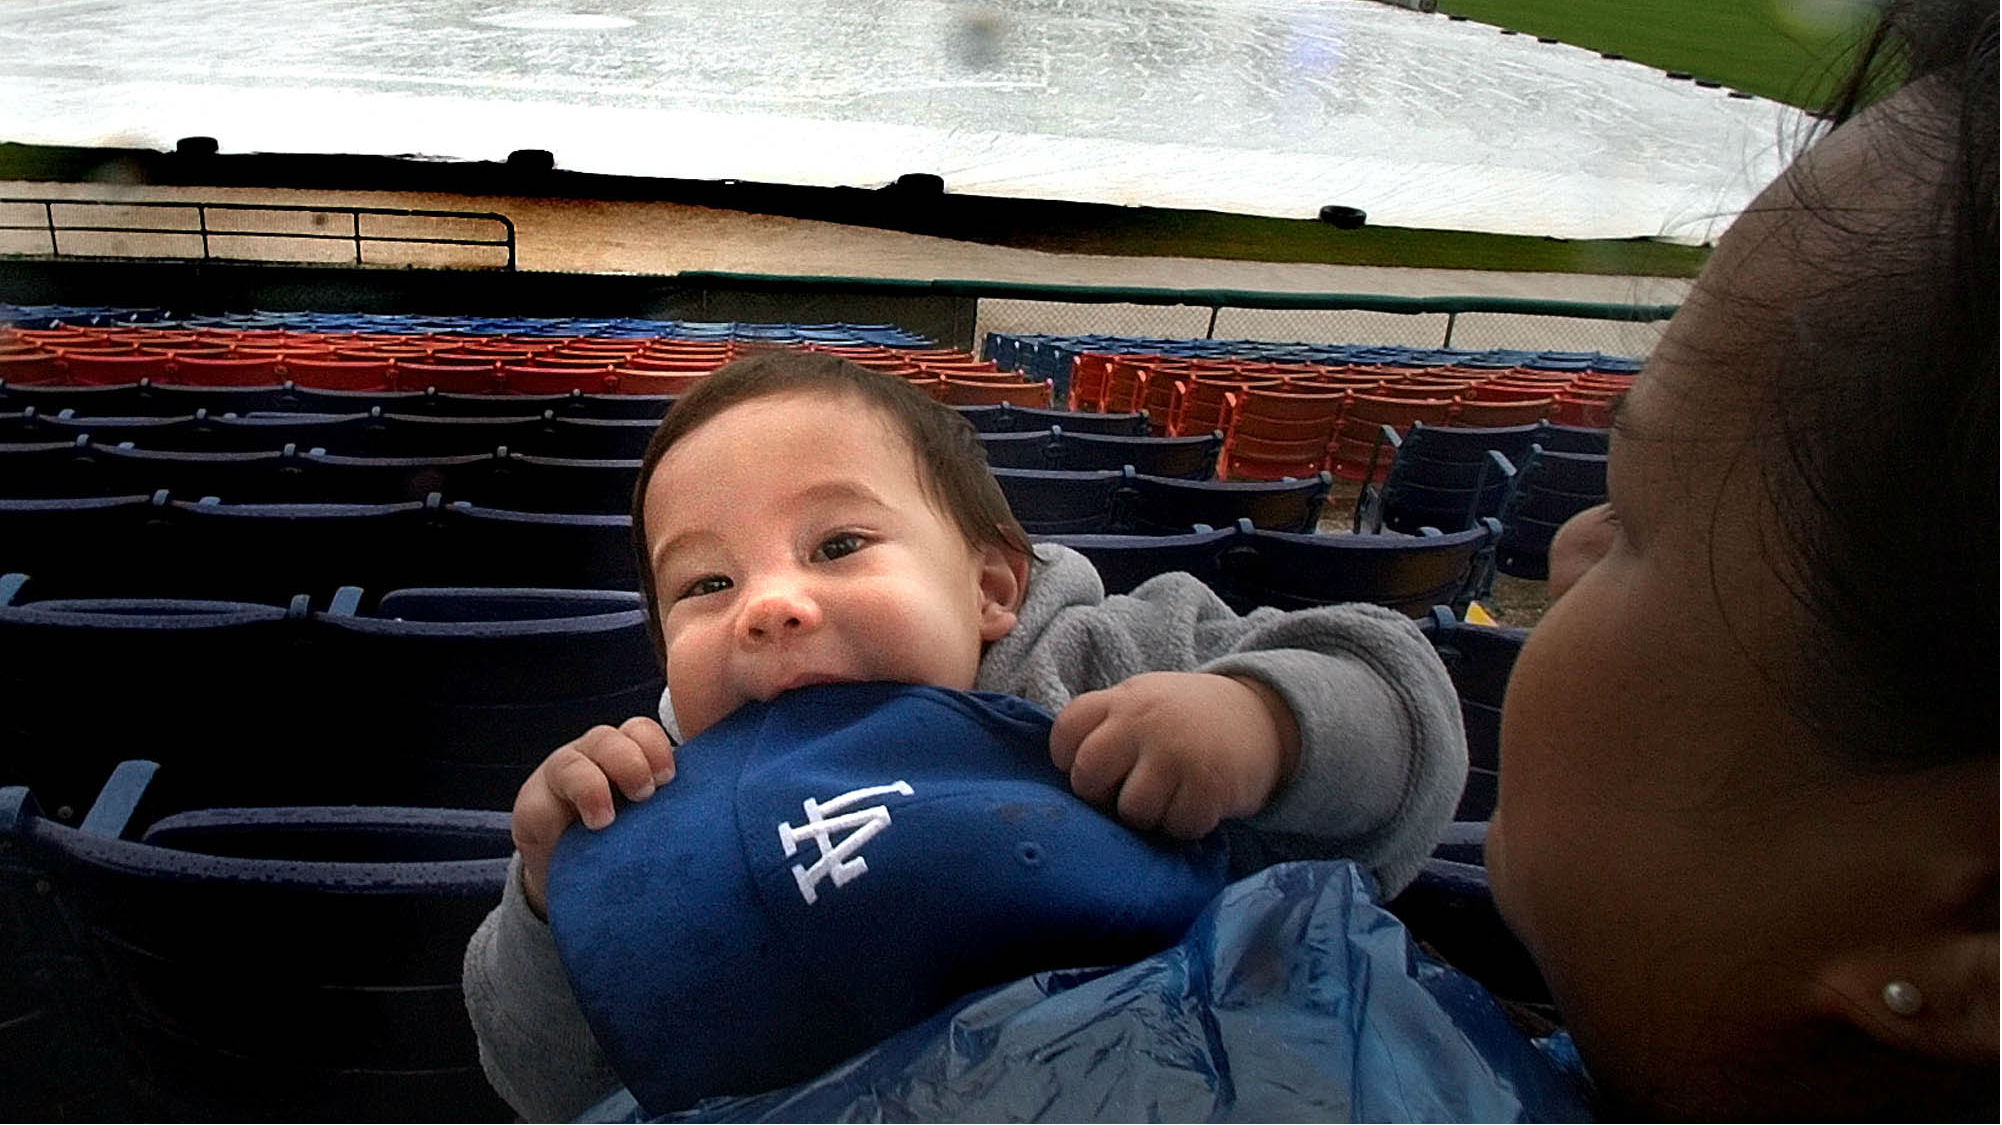 A baby chewing on on a baseball hat.